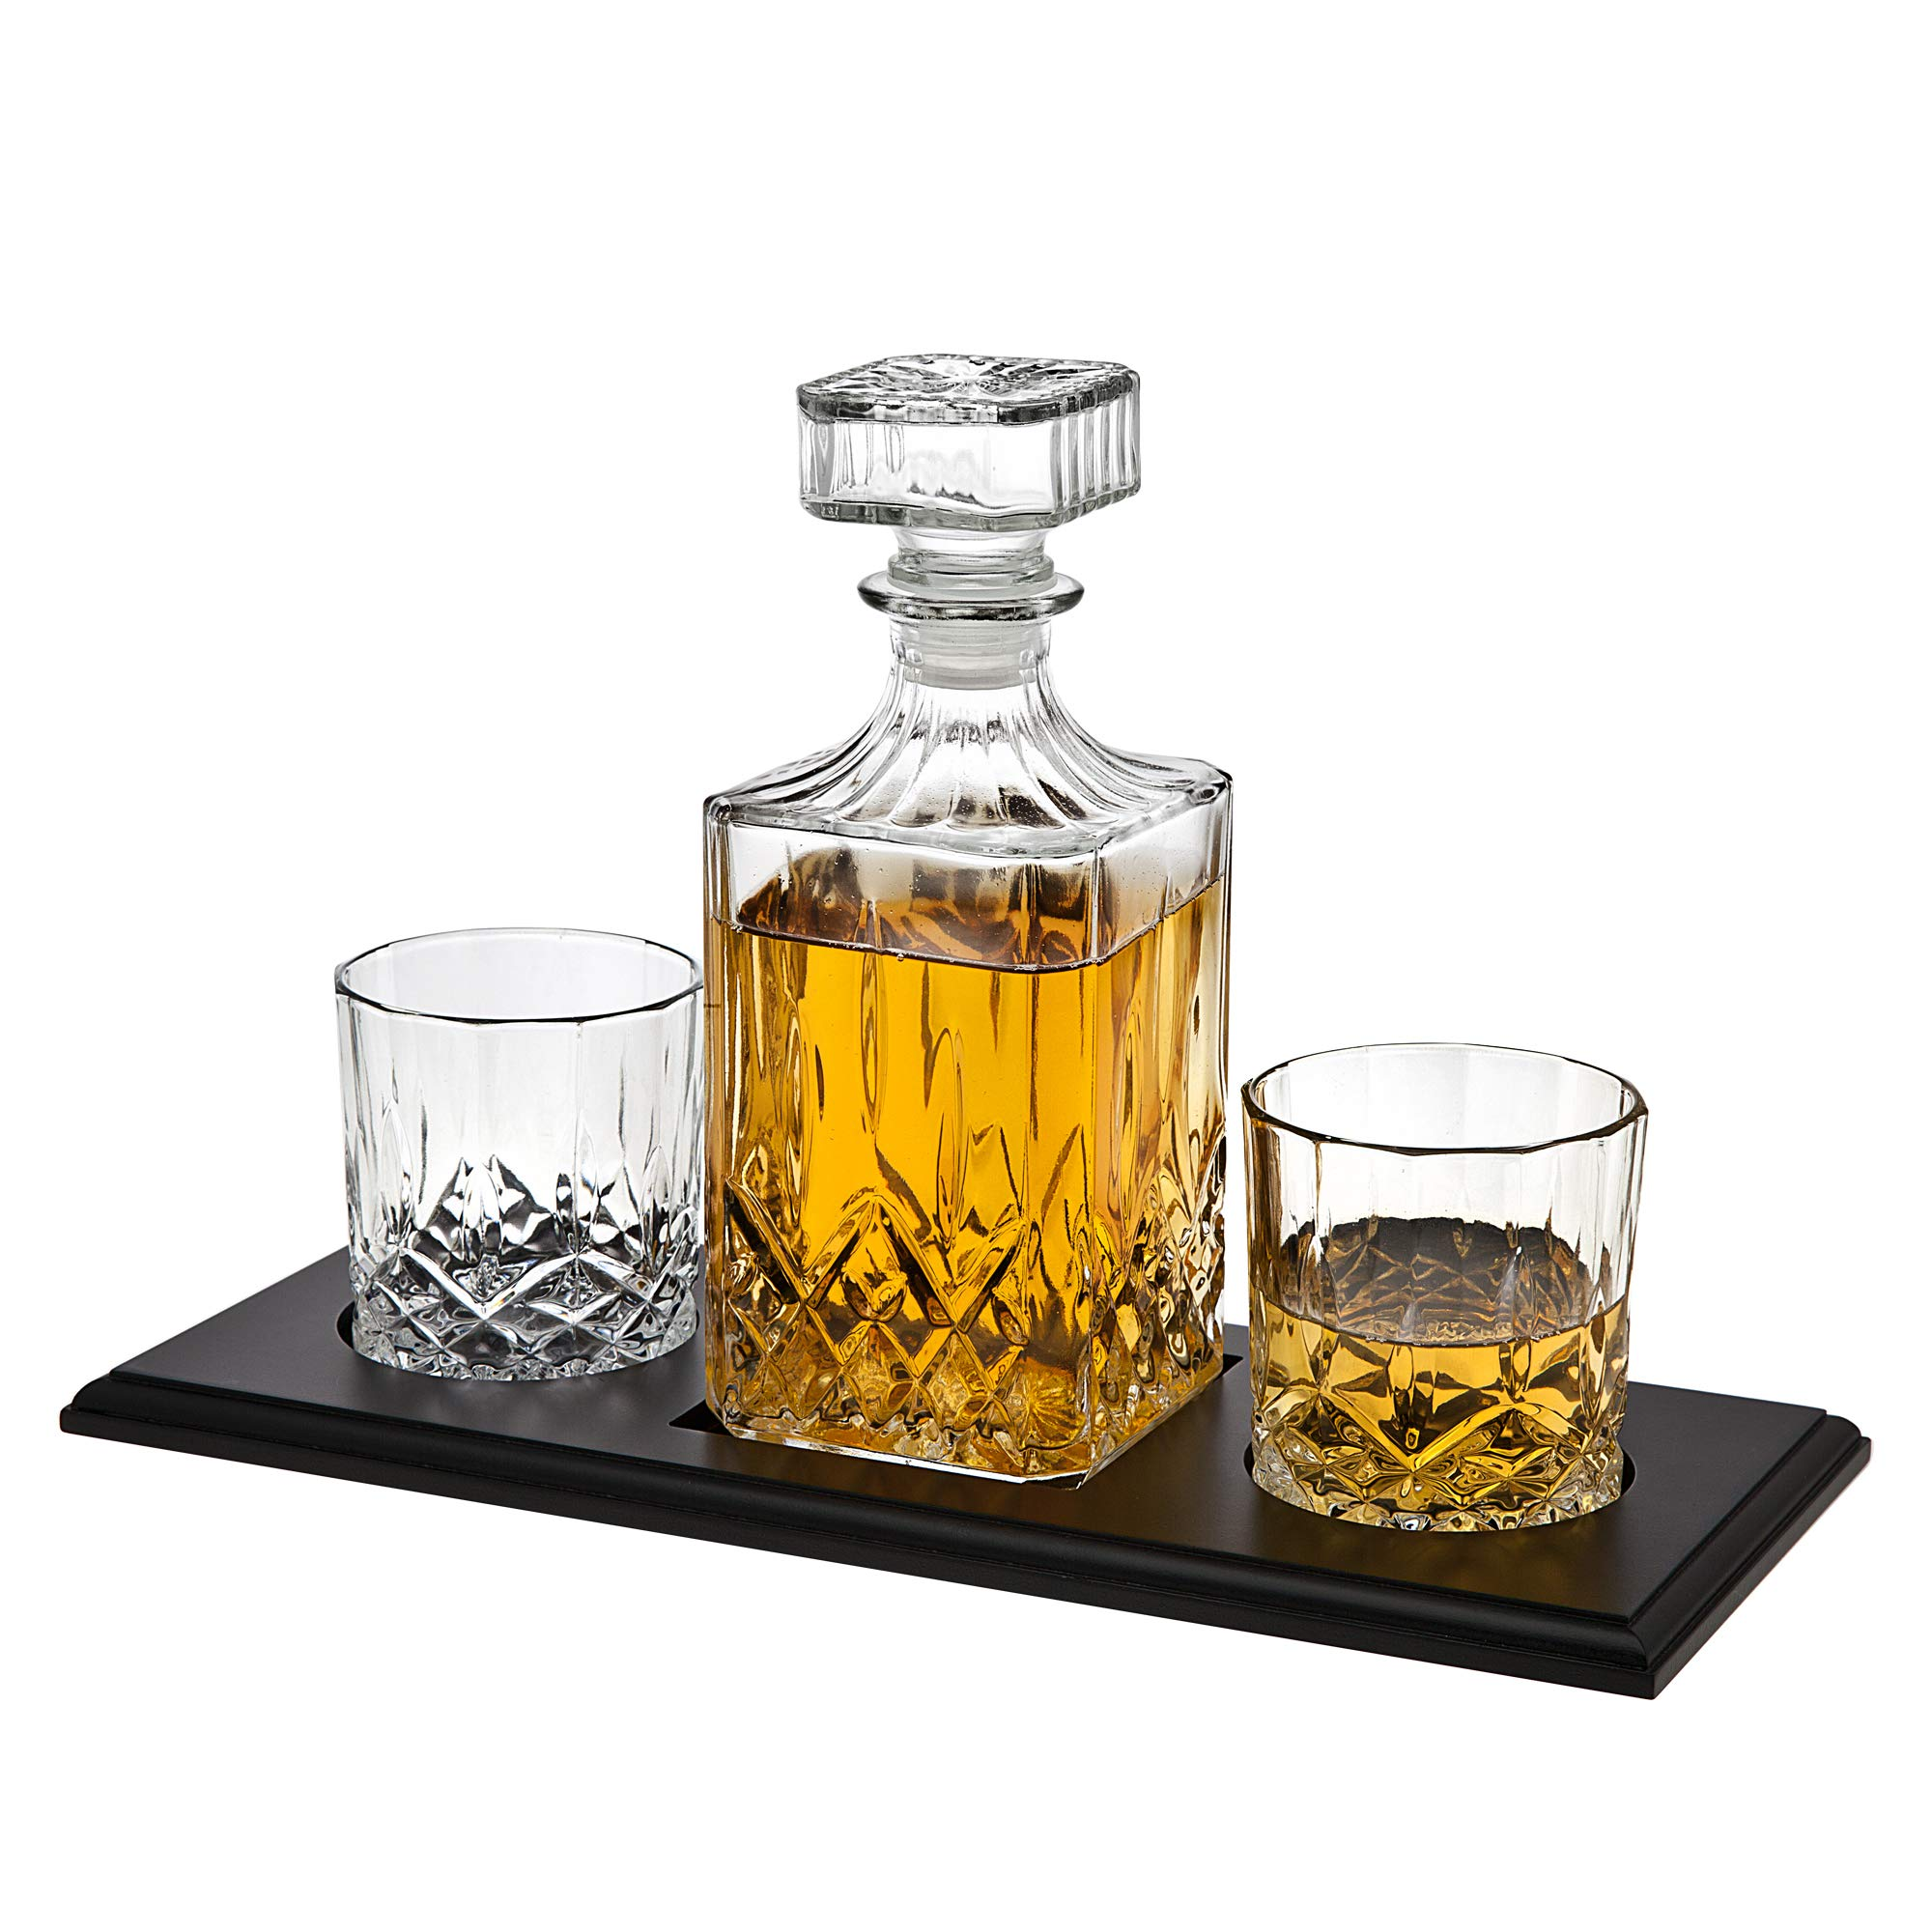 Whiskey Decanter and Glasses Barware Set, for Liquor Scotch Bourbon Wine or Vodka - Includes 2 Whisky Glasses on Wooden Display Tray